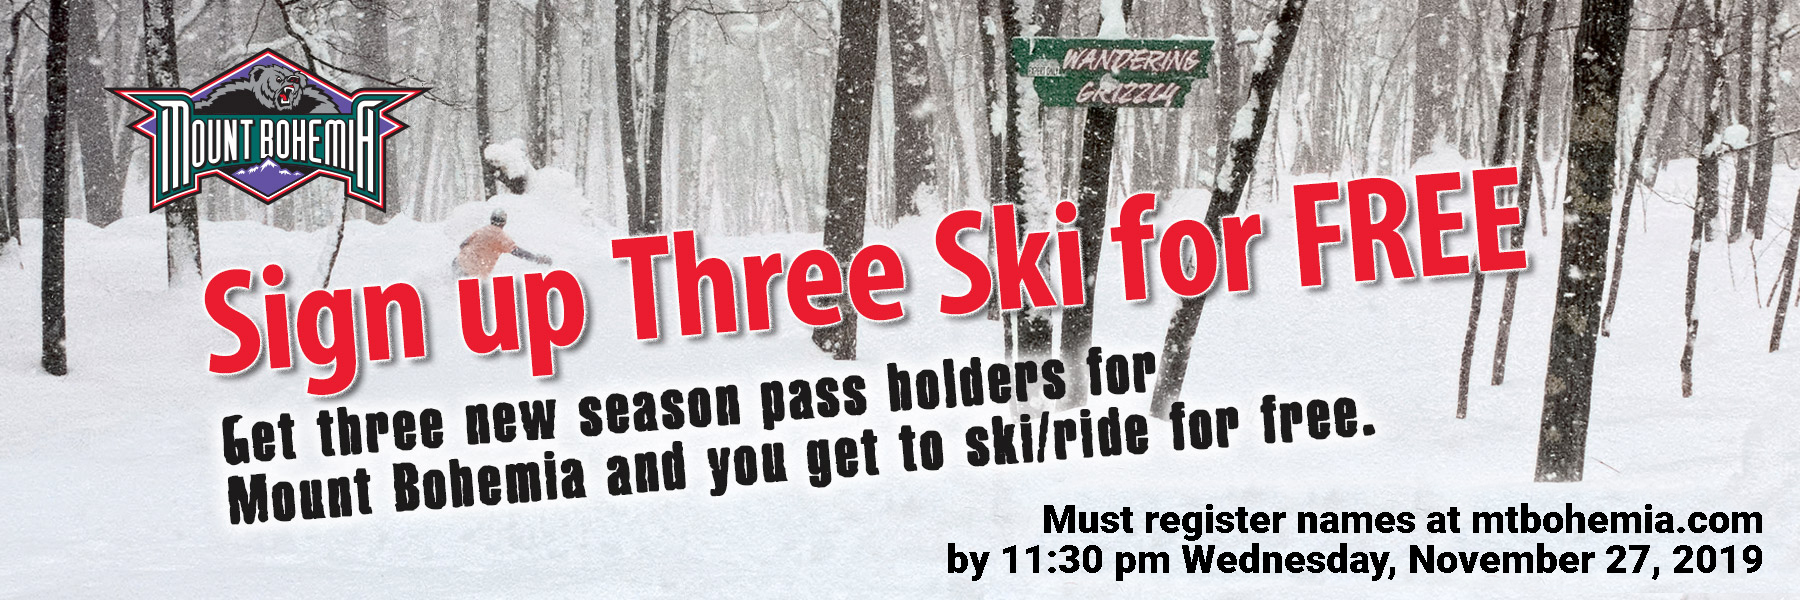 sign up three ski free offer